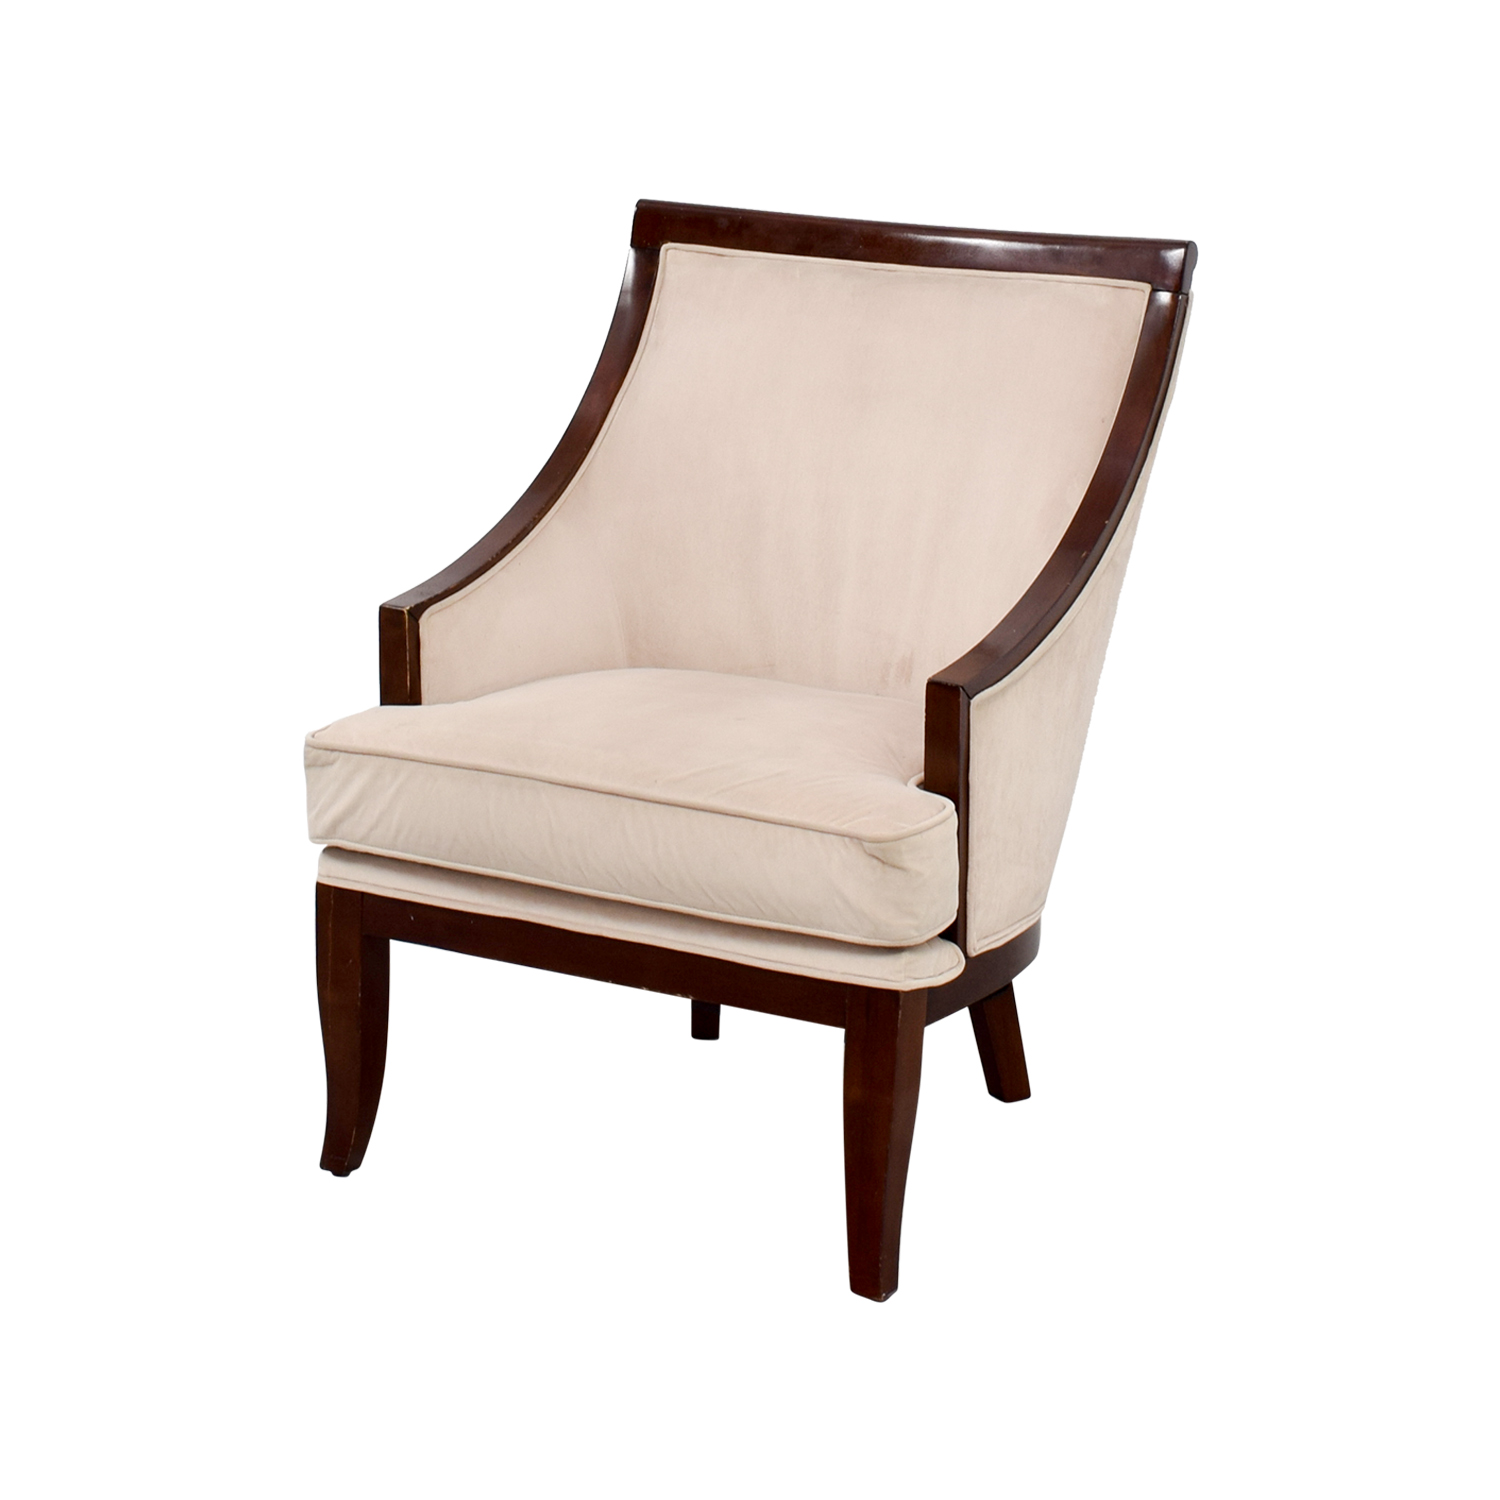 cream accent chair 90 armed accent chair chairs 13574 | second hand cream armed accent chair